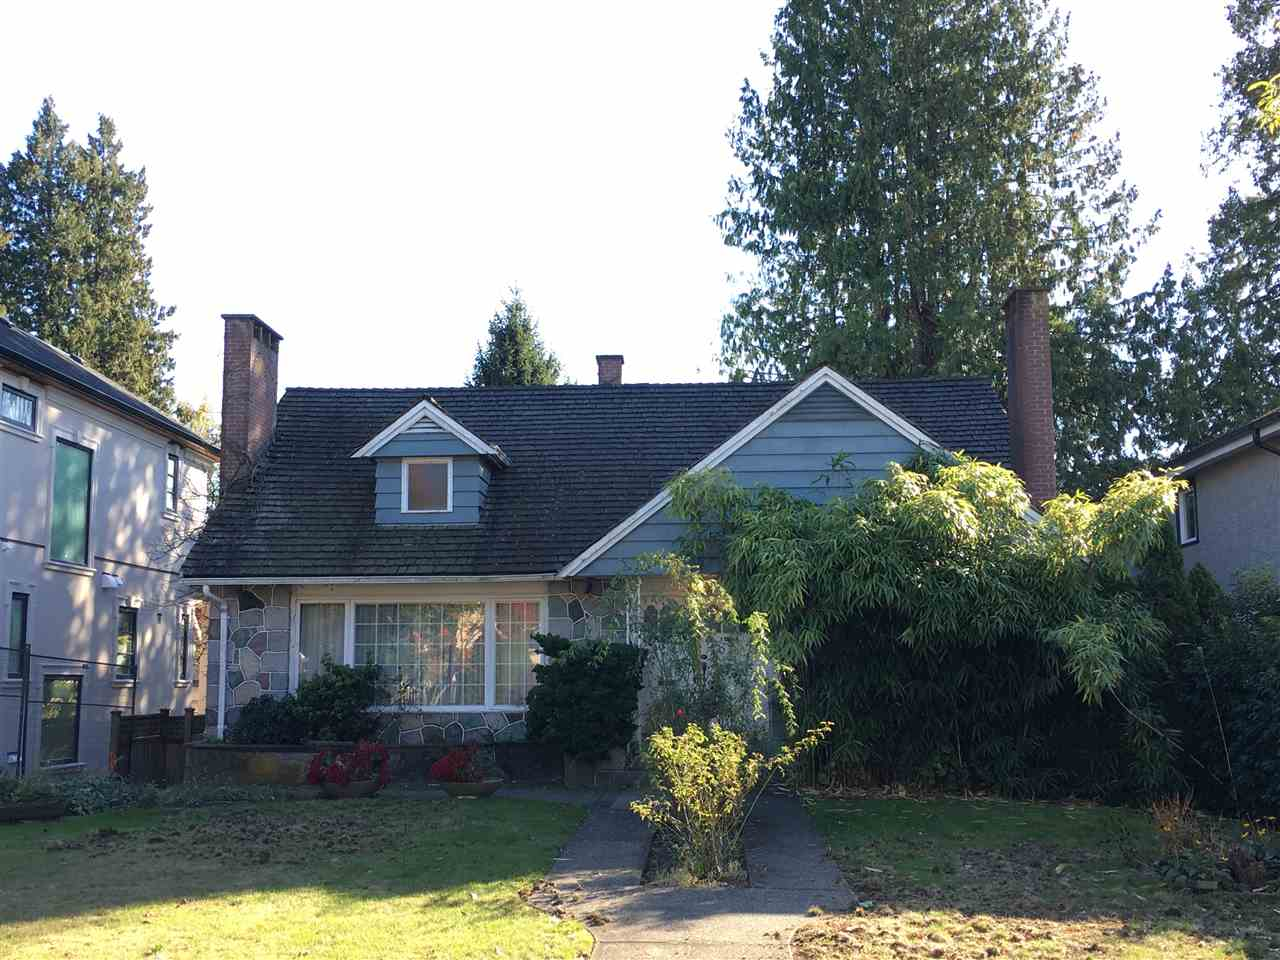 Main Photo: 1768 W 61ST Avenue in Vancouver: South Granville House for sale (Vancouver West)  : MLS®# R2120423